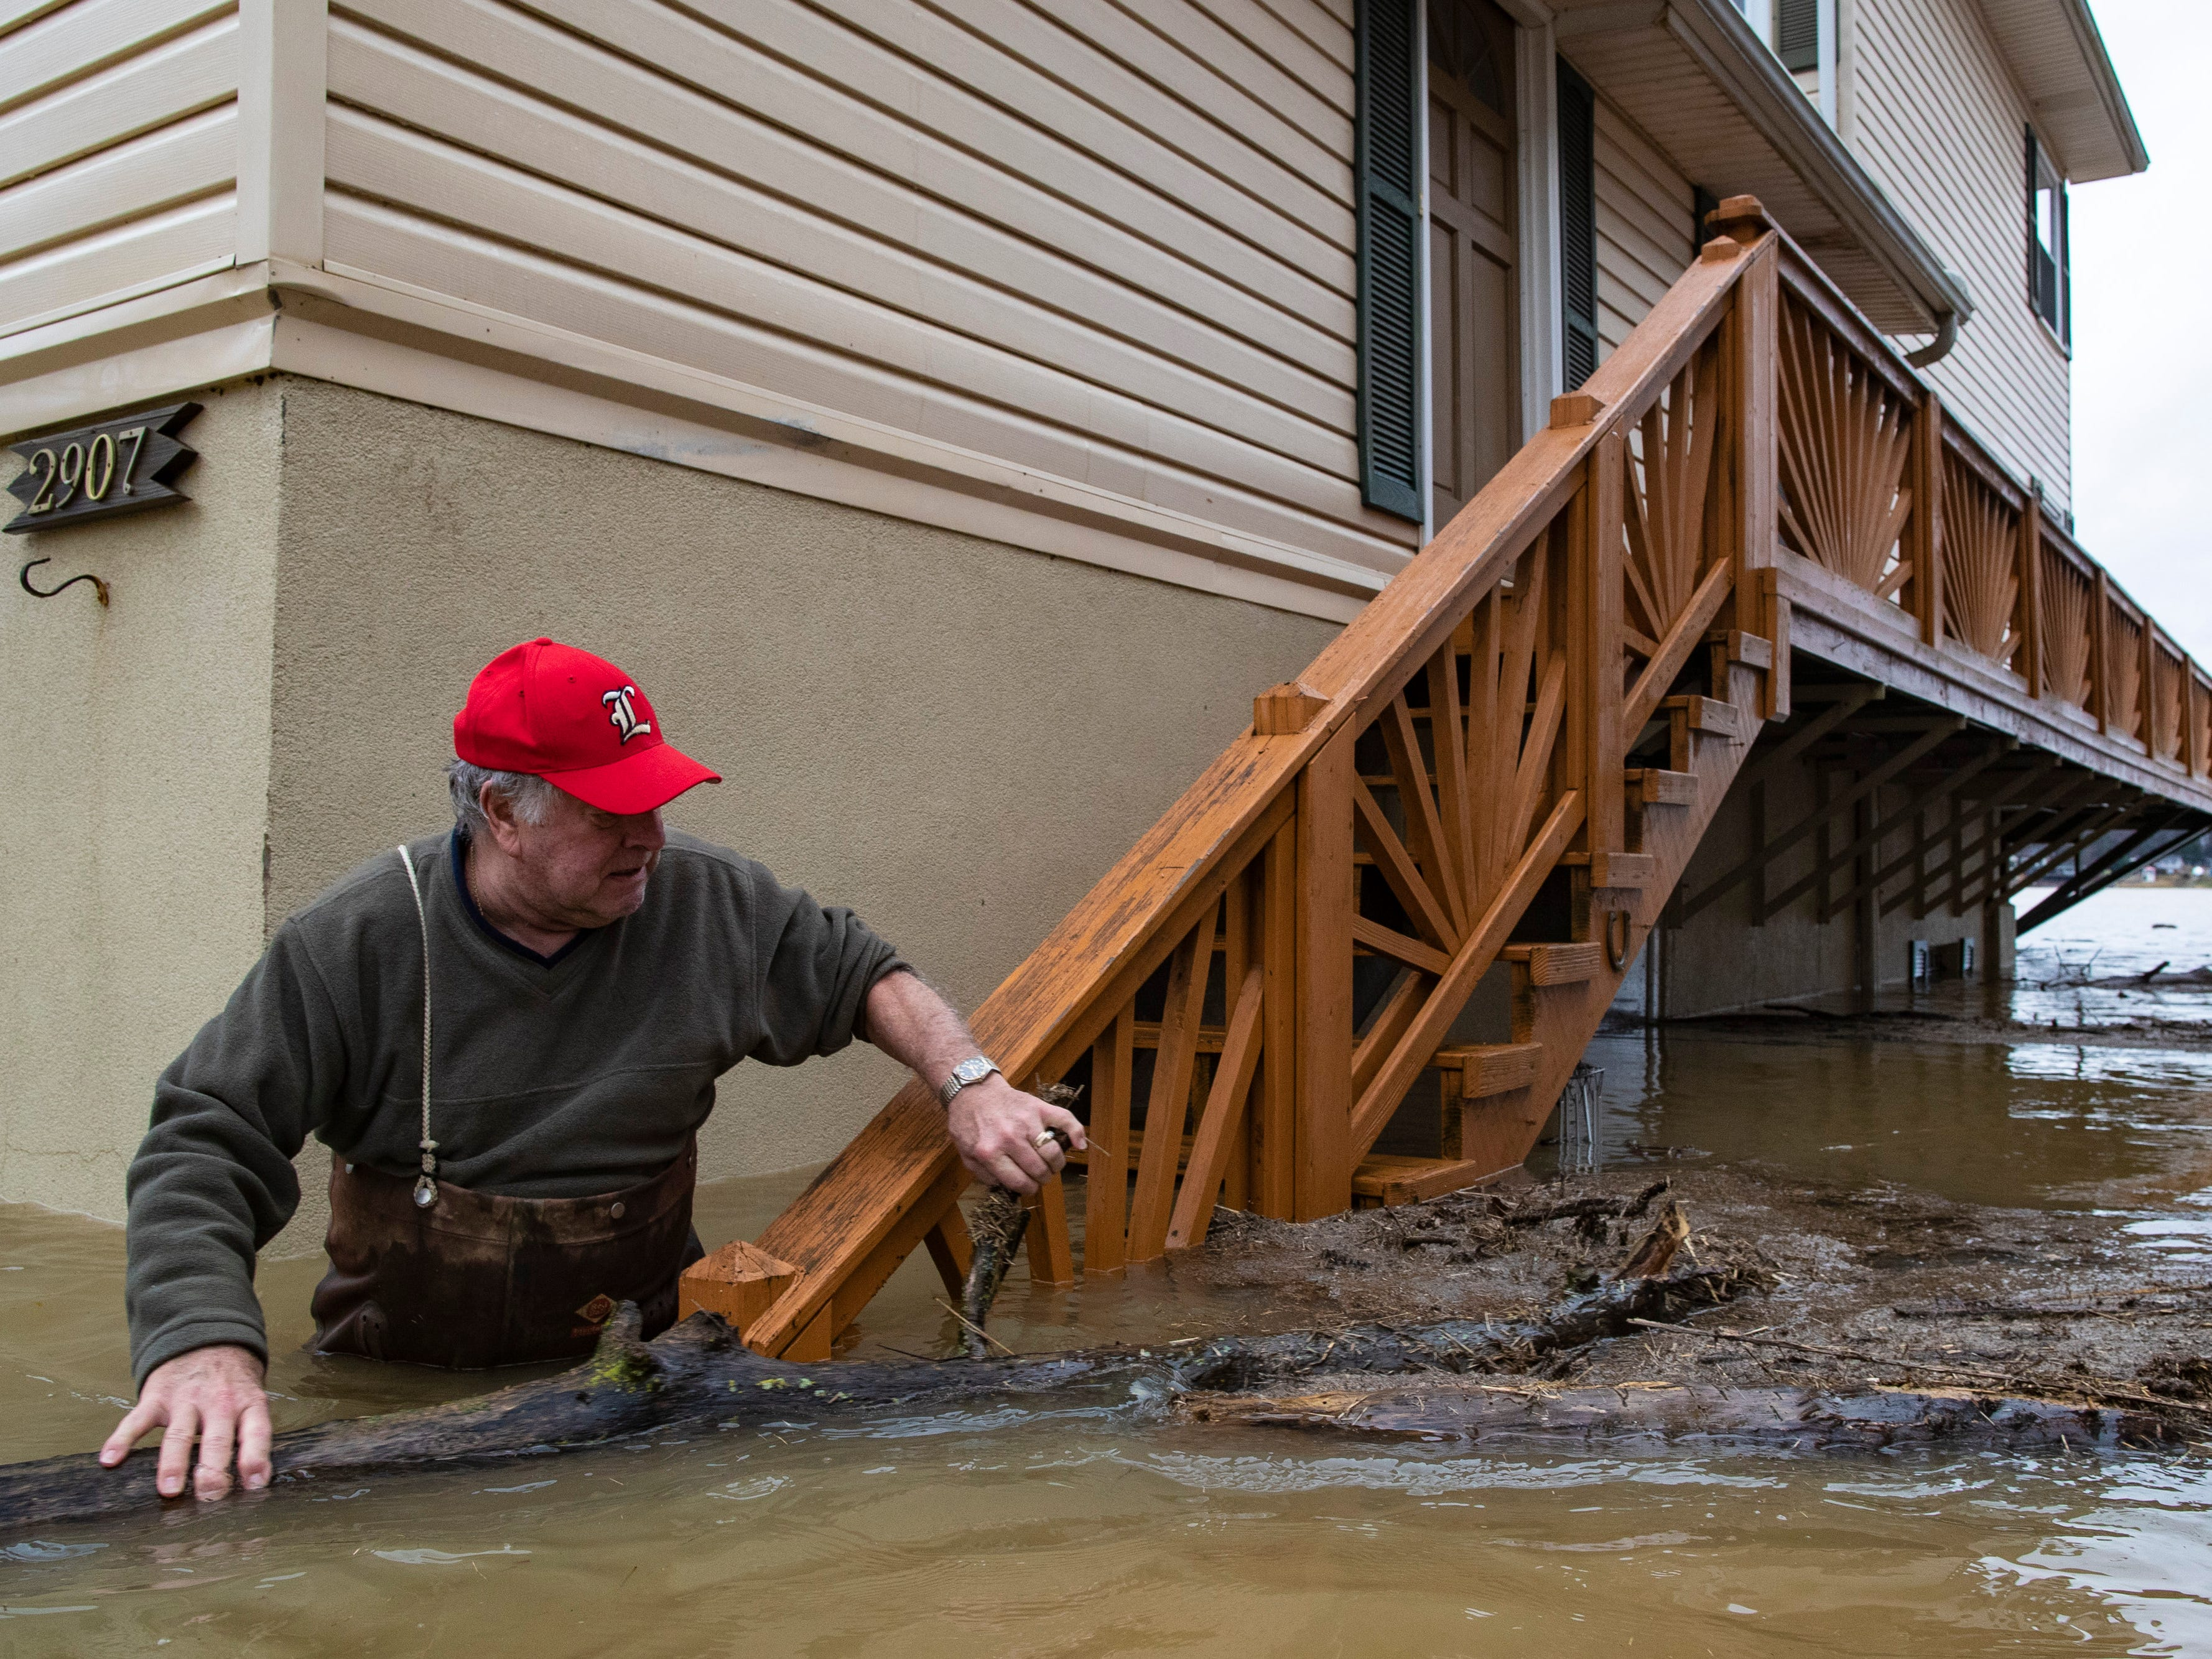 """Tony Kerger, 78, moves debris from the stairway outside his home off River Road as high waters on the Ohio River rose Tuesday. """"We've lived here 44 years,"""" Kerger said. """"Everybod about had their house put back together from last year and now we'll be doing it again."""" Feb. 12, 2019"""